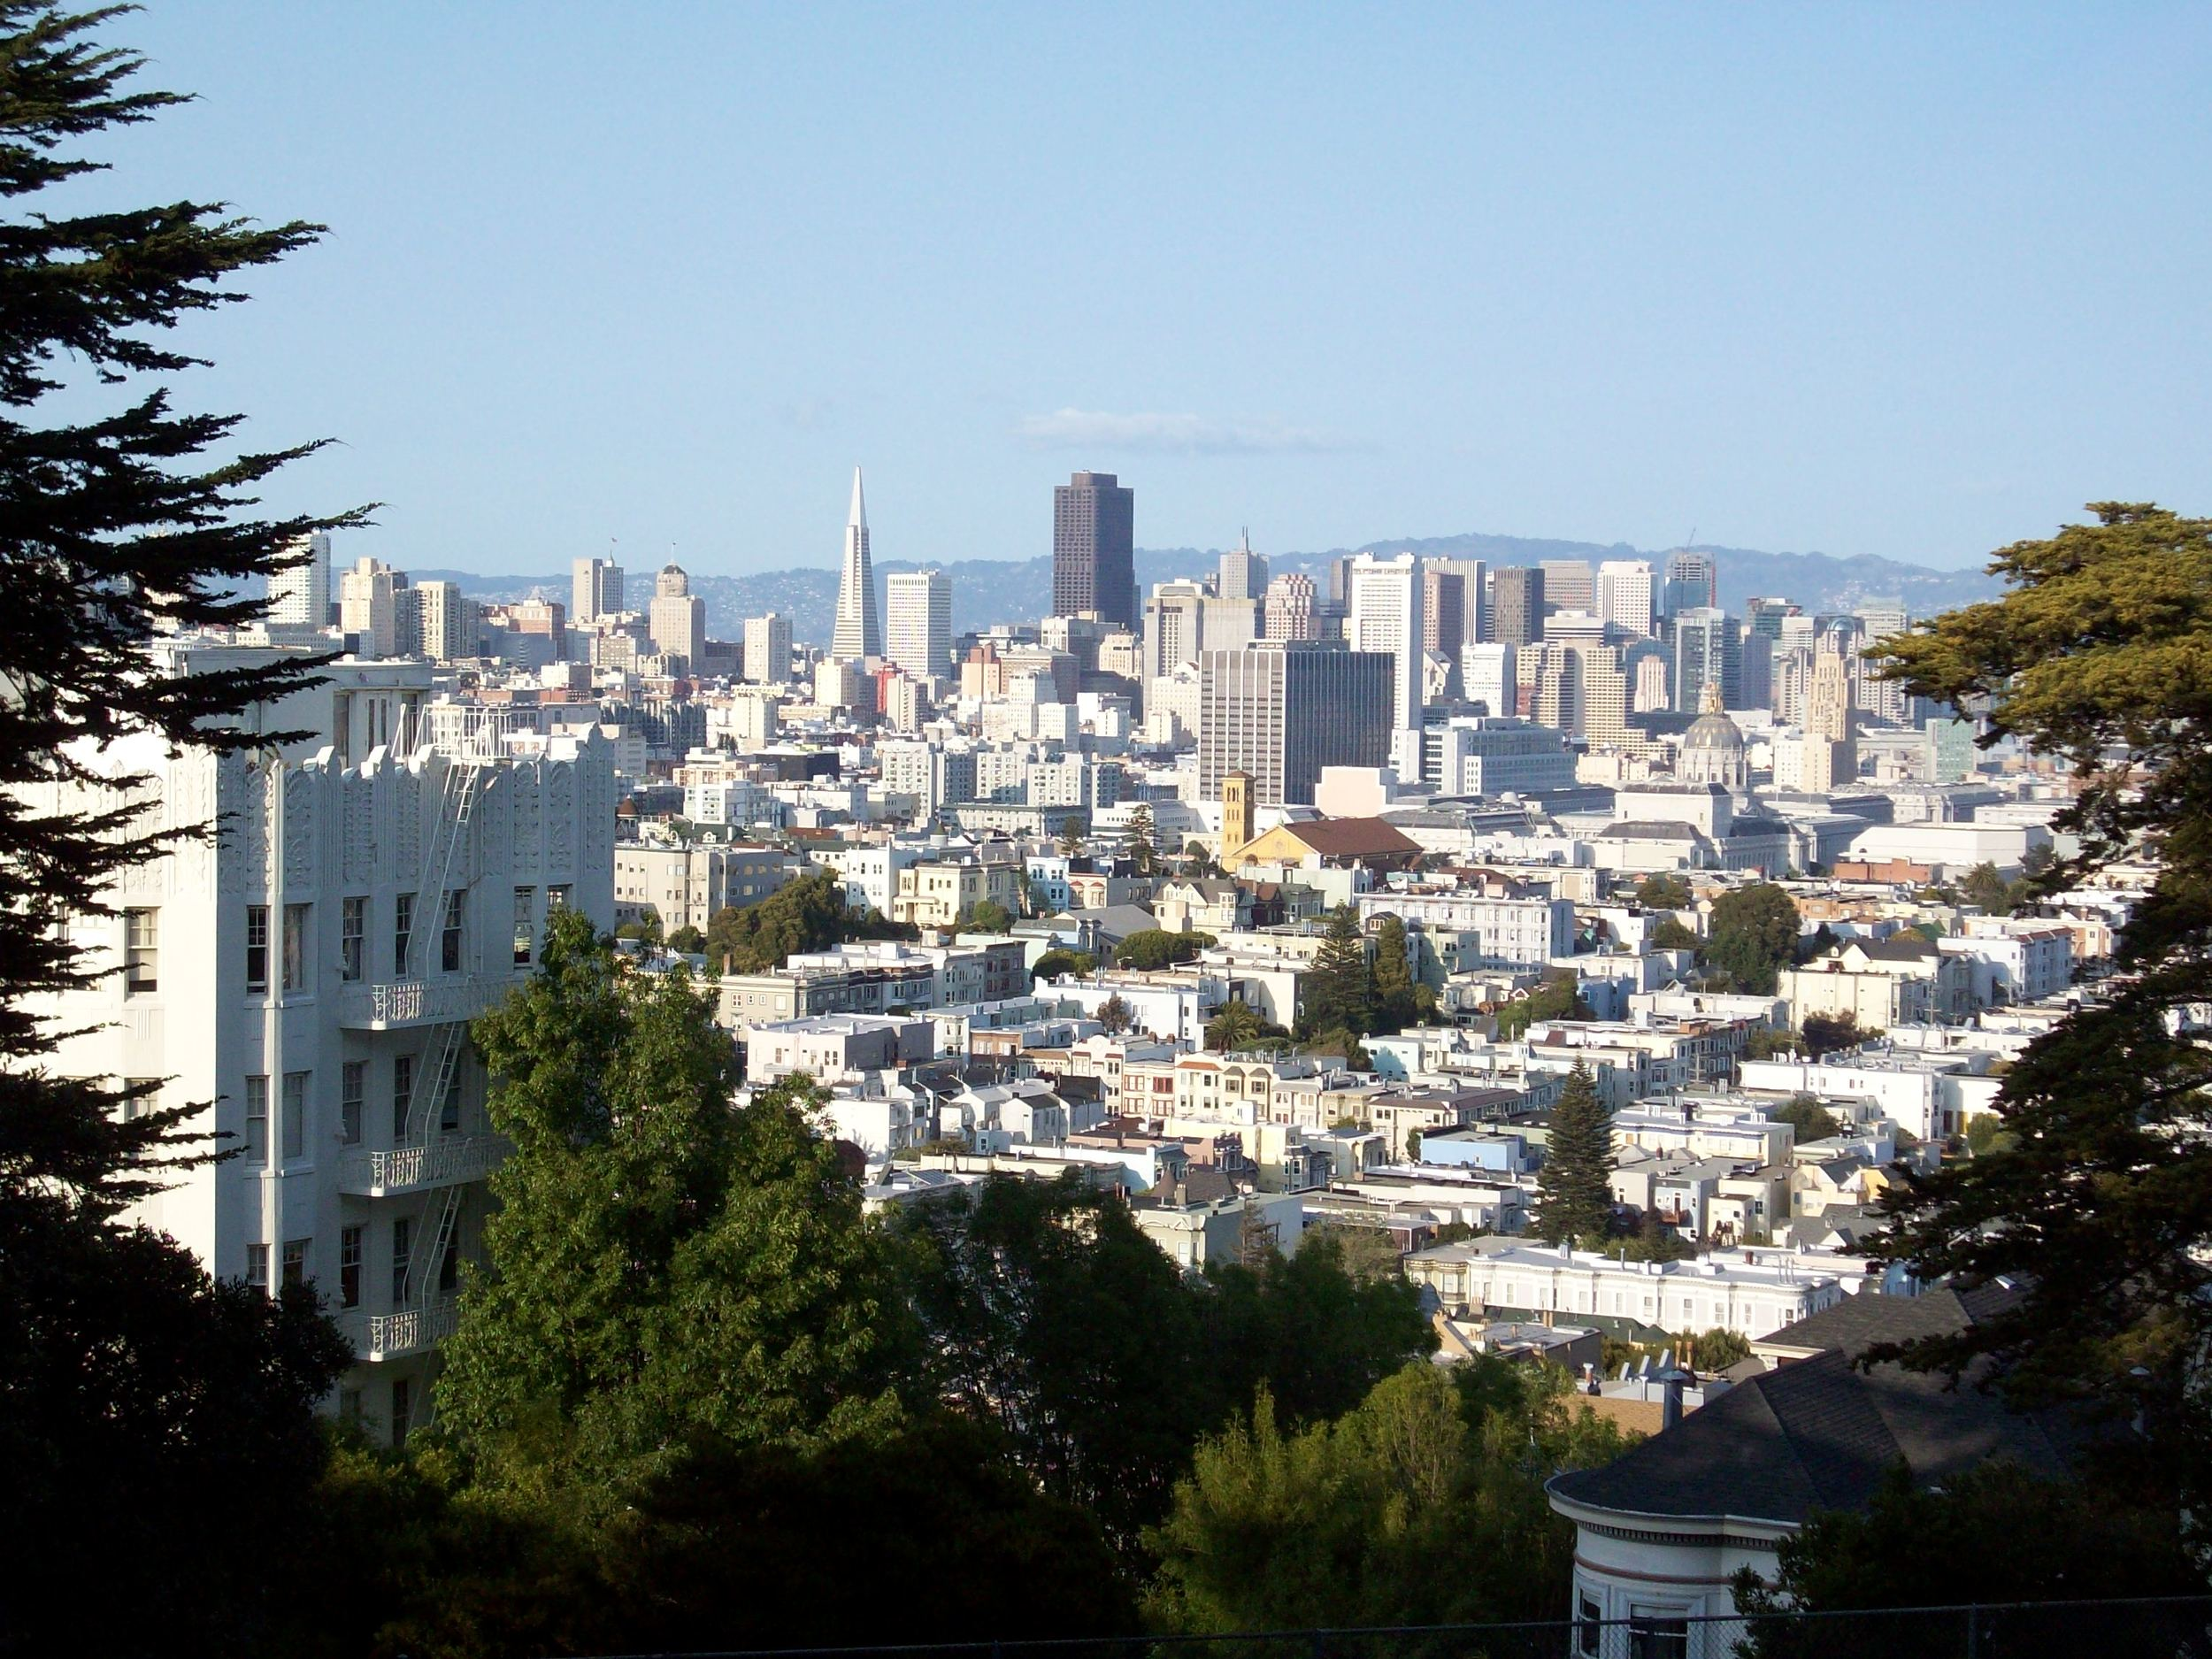 Buena Vista Park is the oldest park in San Francisco and known for its breathtaking views.